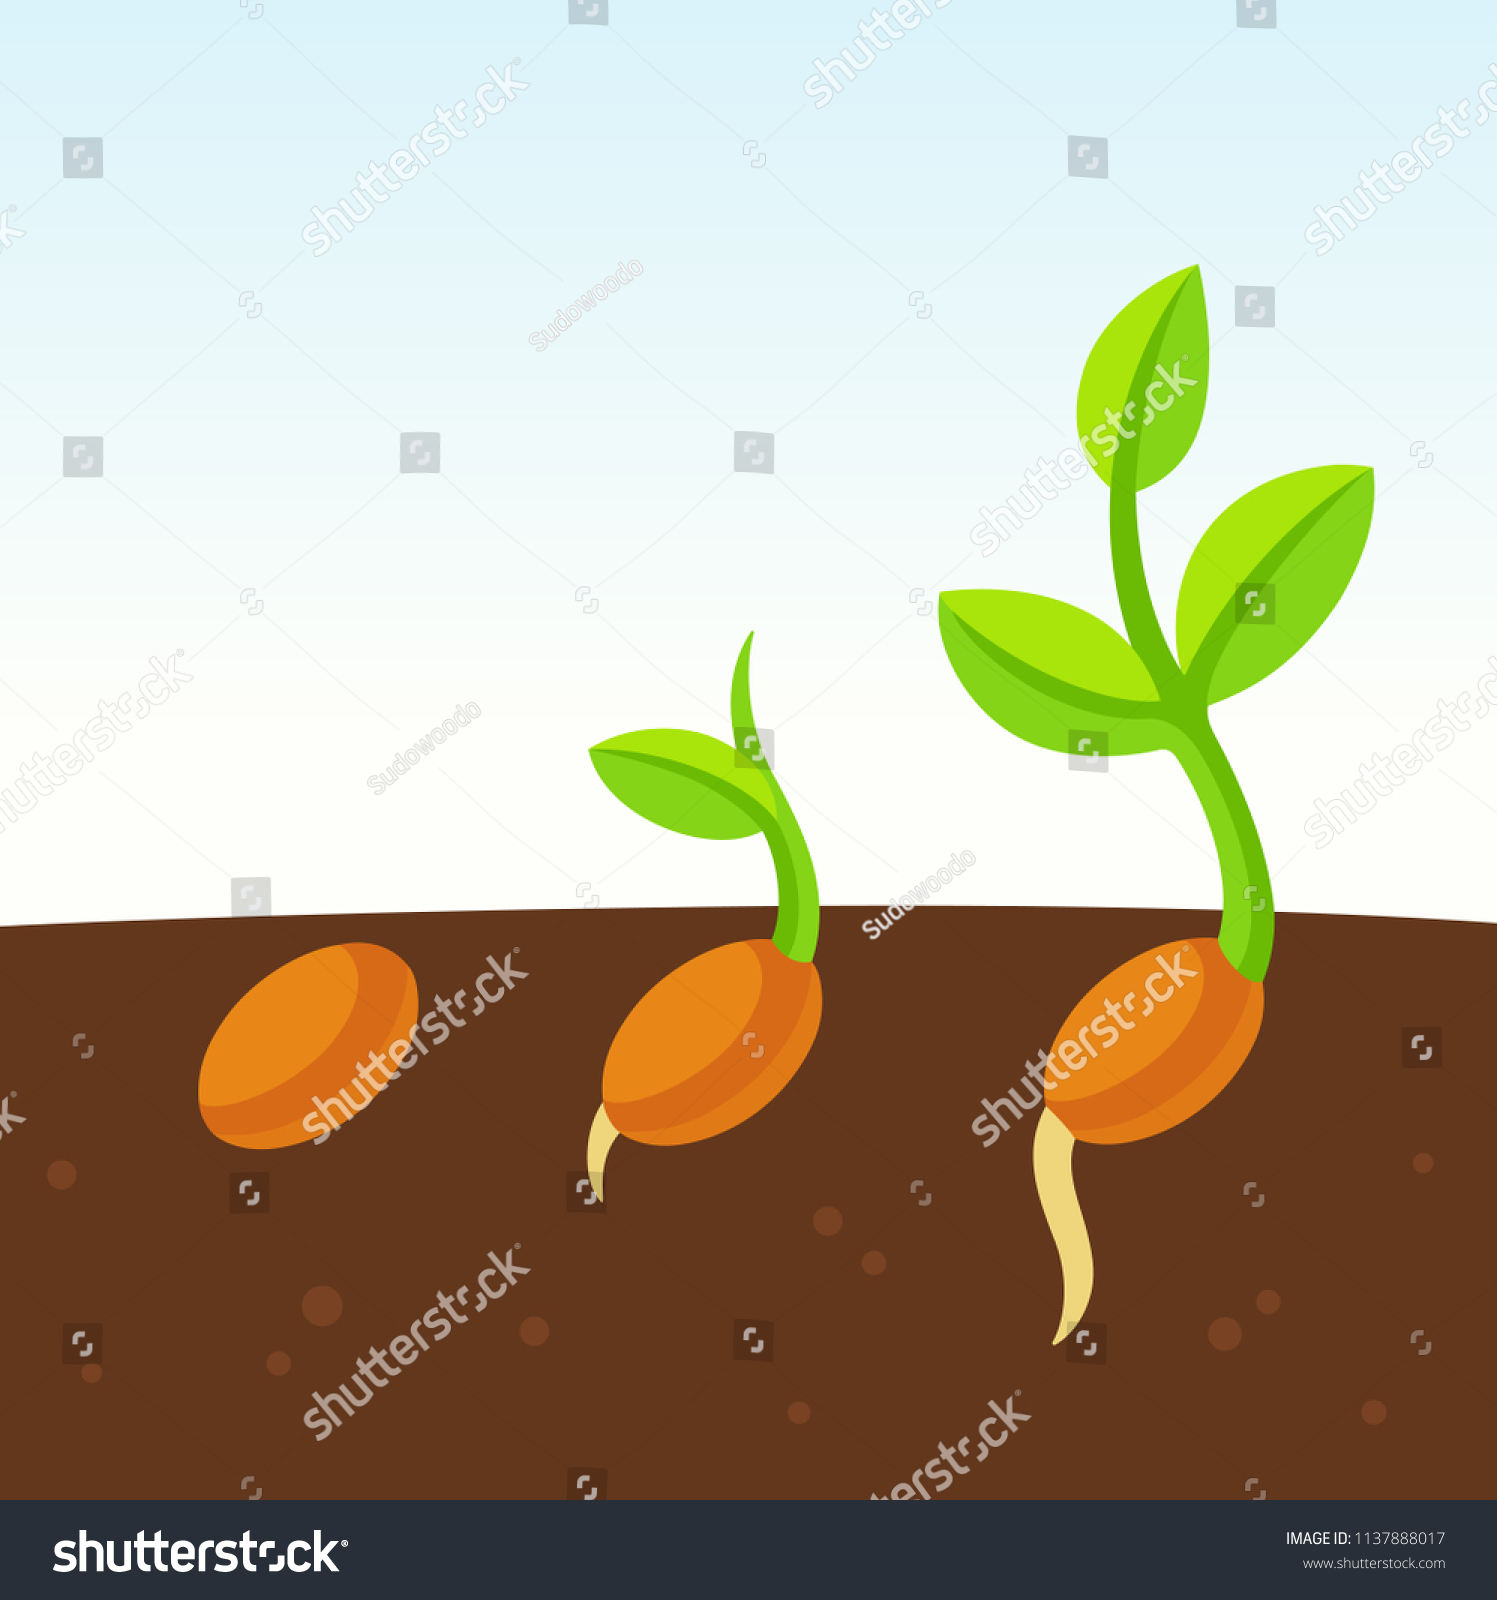 Little Growing Plant Cartoon Illustration Seed Stock Vector Royalty Free 1137888017